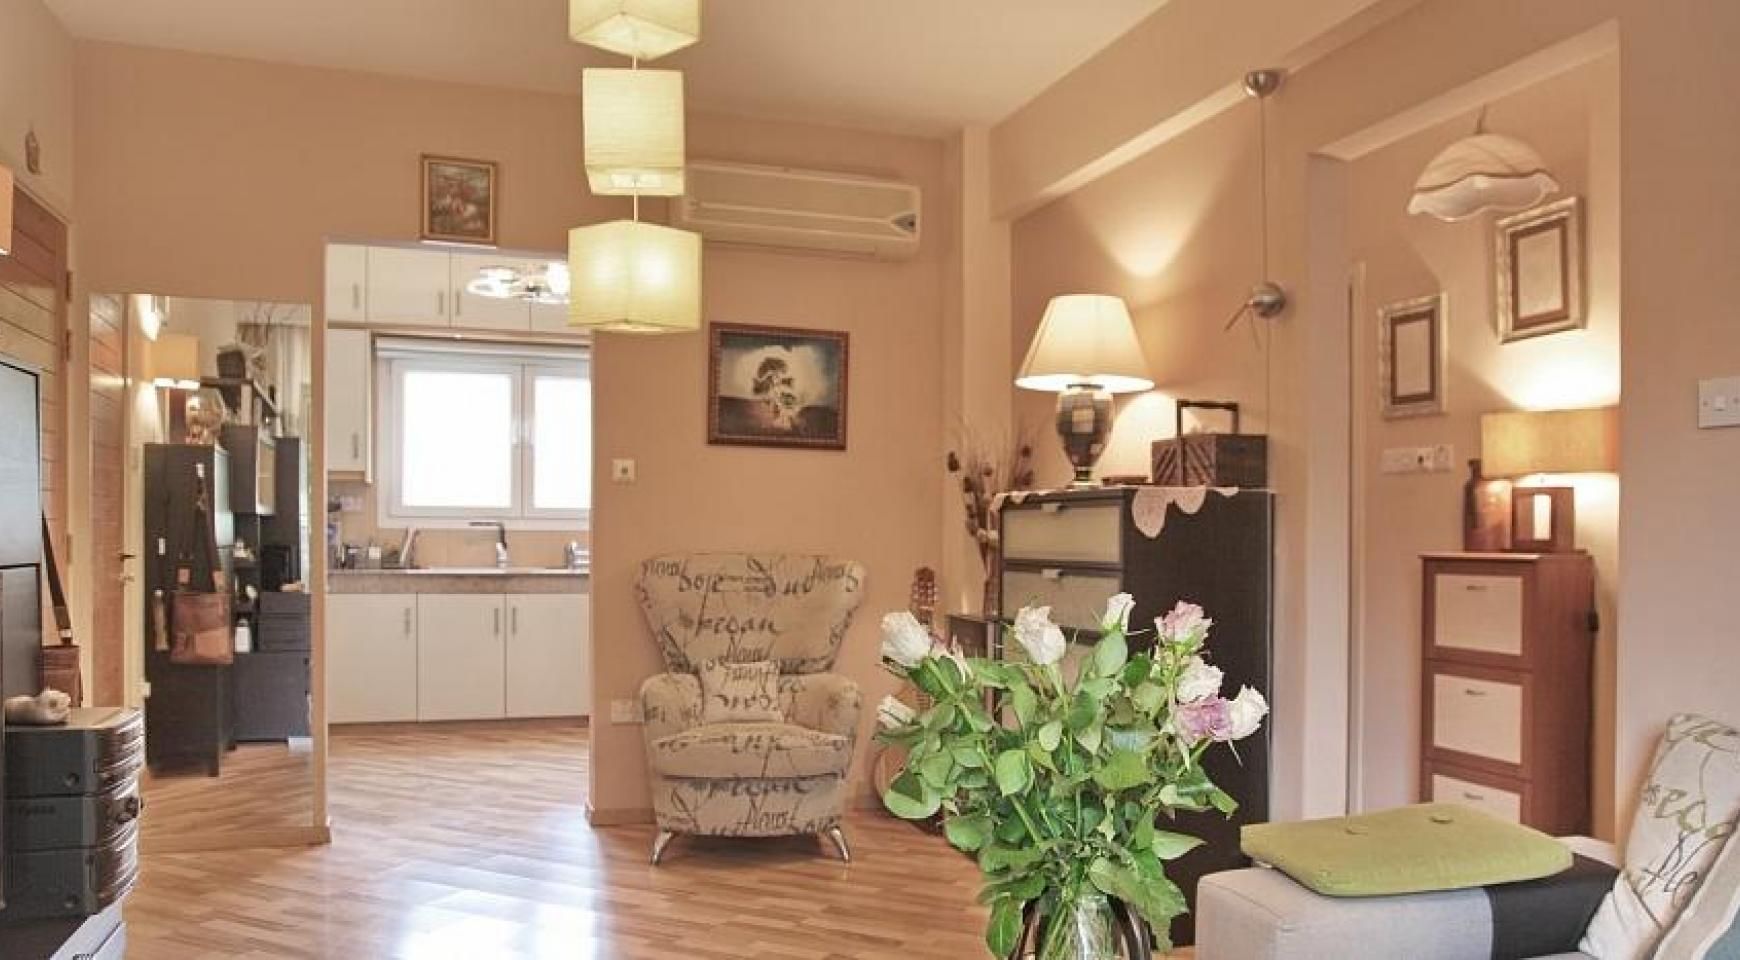 2 Bedroom Apartment with Private Garden - 2